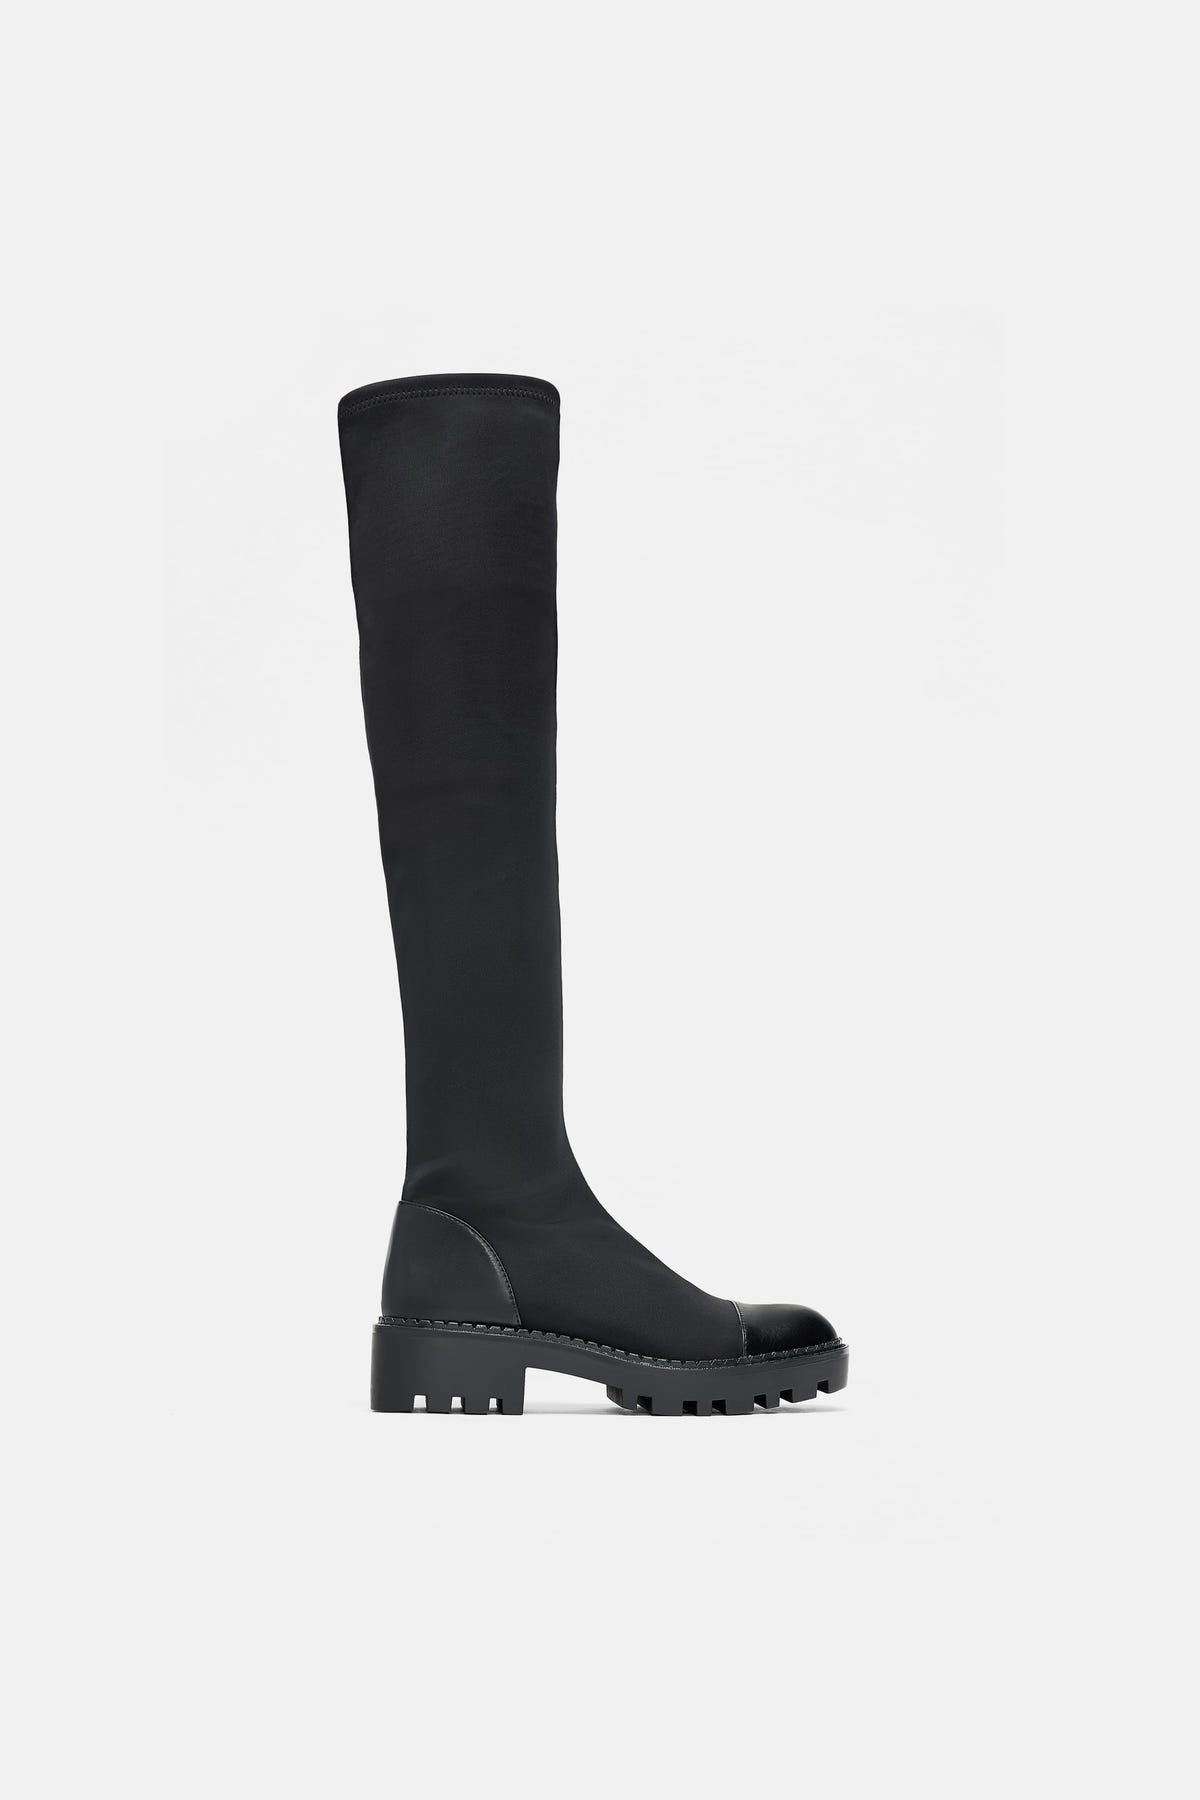 64aab1727 Womens Boots Trends - Best Winter 2019 Boot Styles